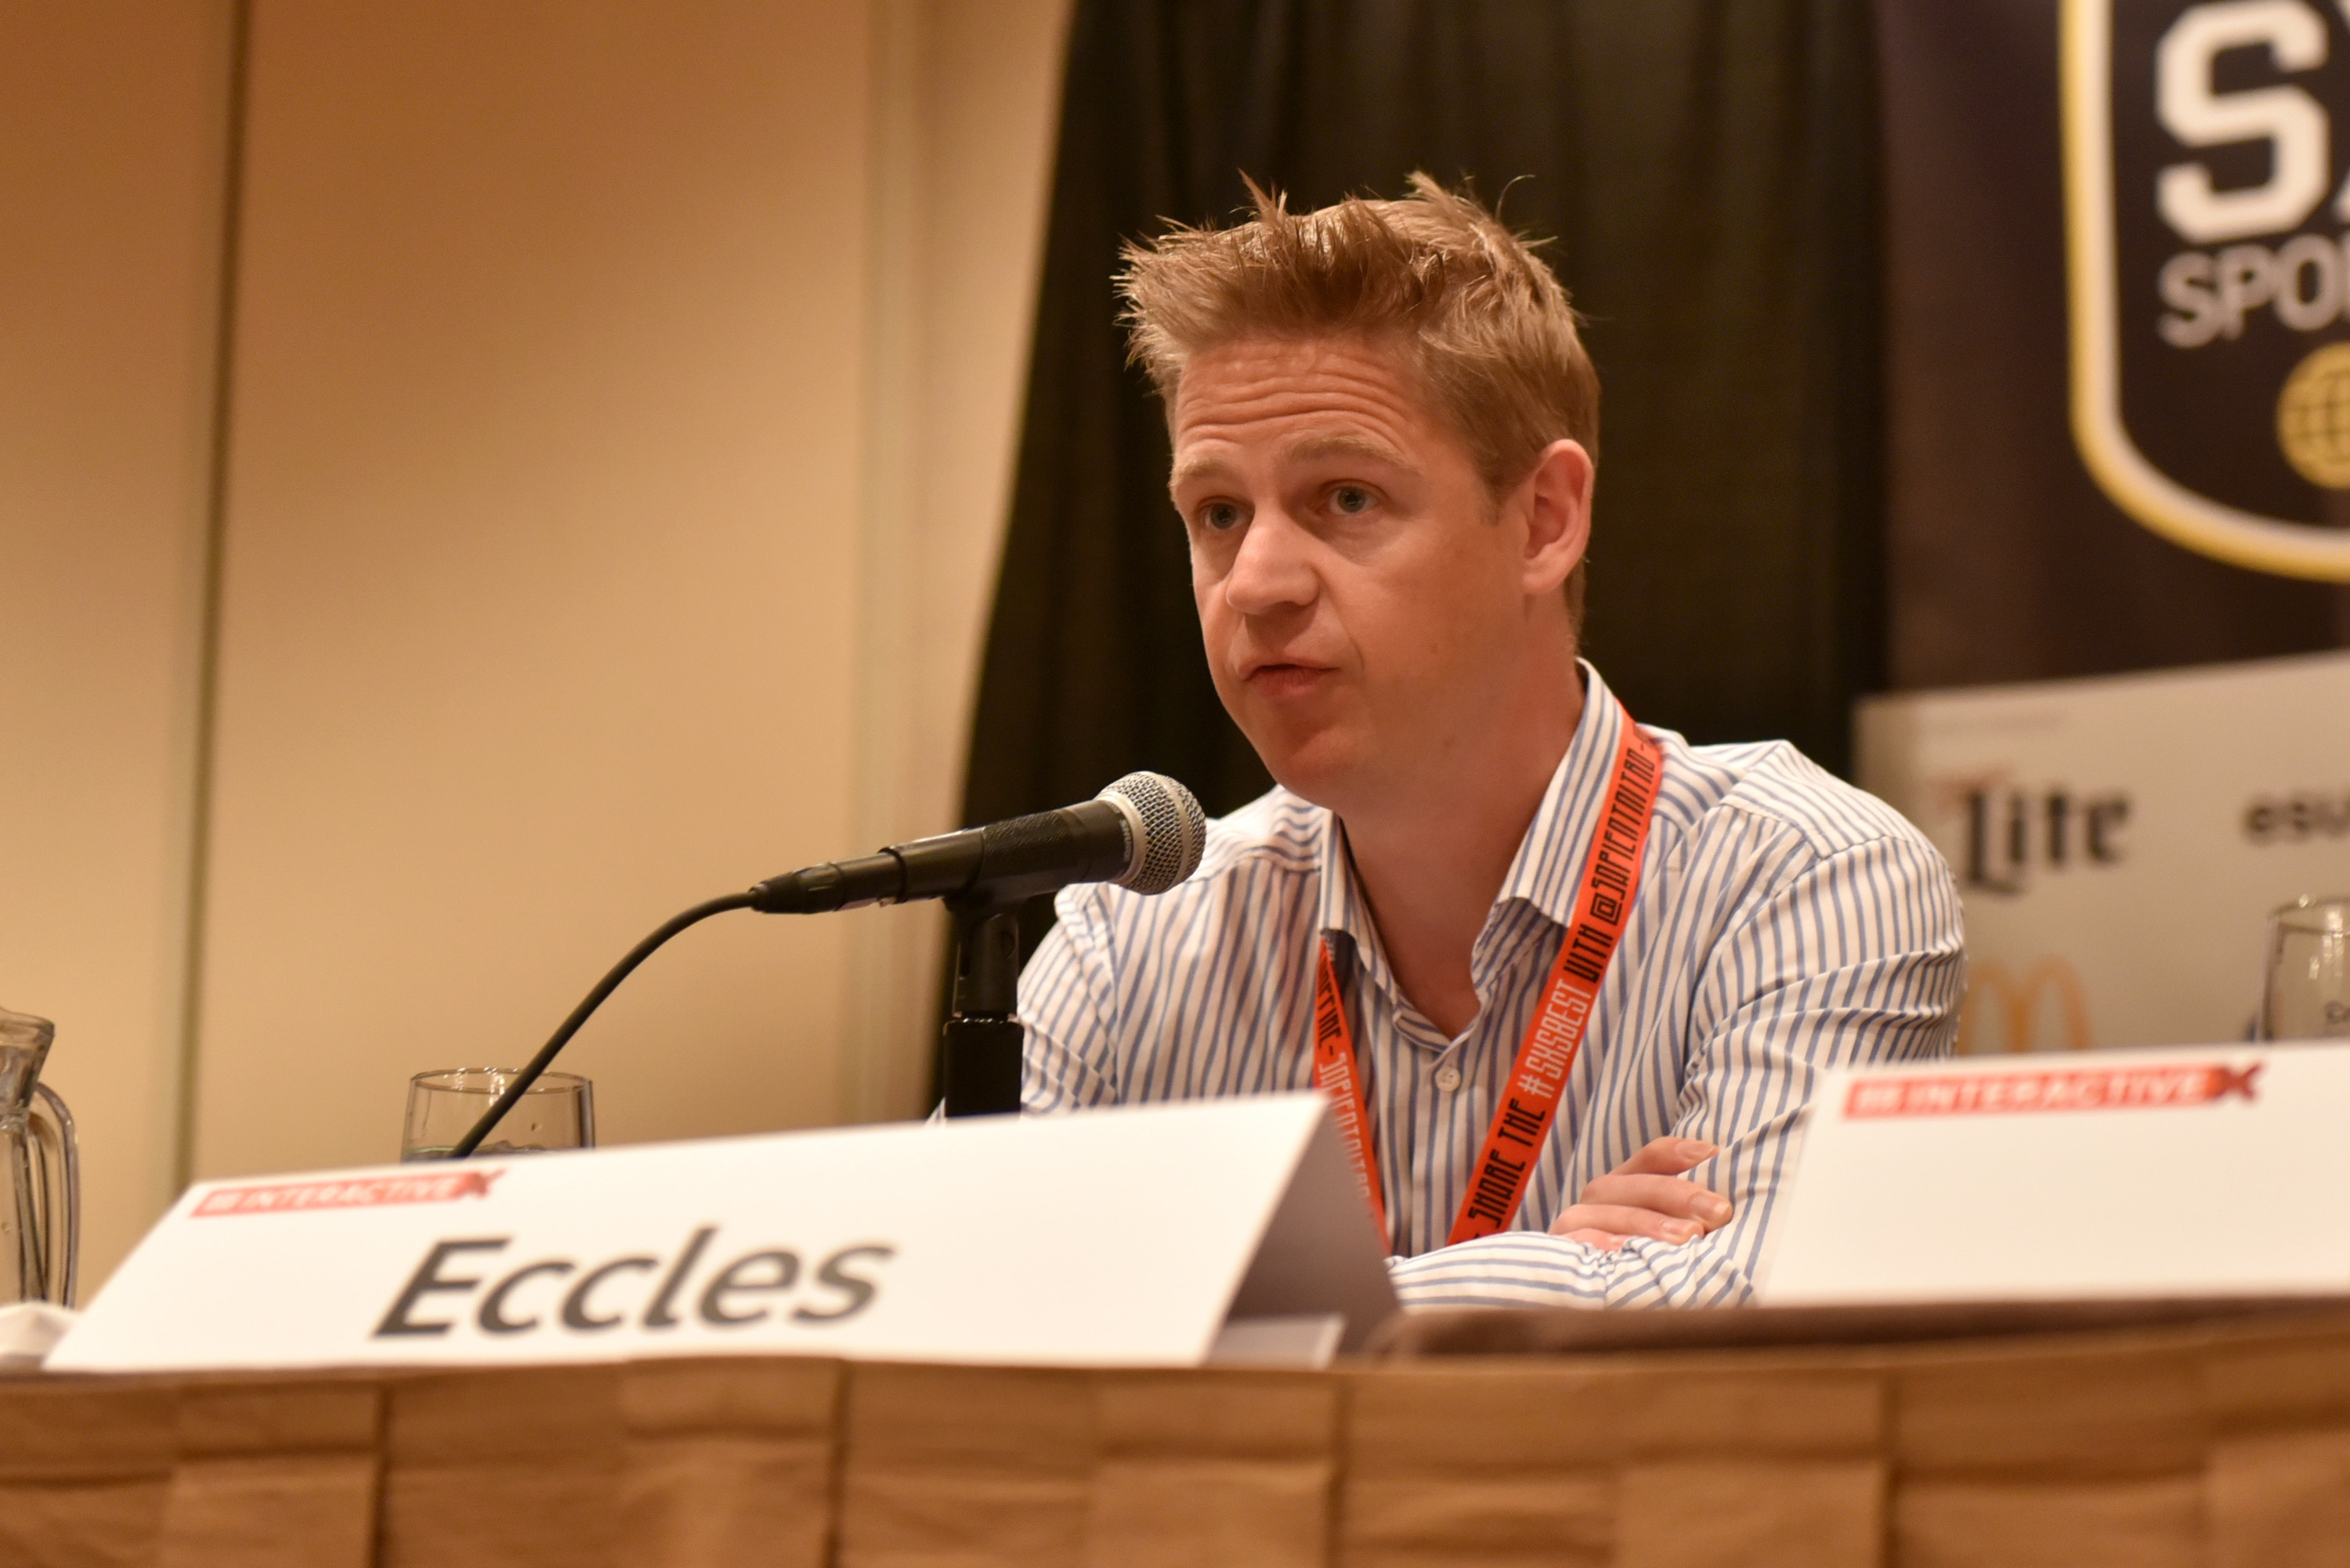 Fantasy Sports: Changing The Fan Experience Daily - 2015 SXSW Music, Film + Interactive Festival